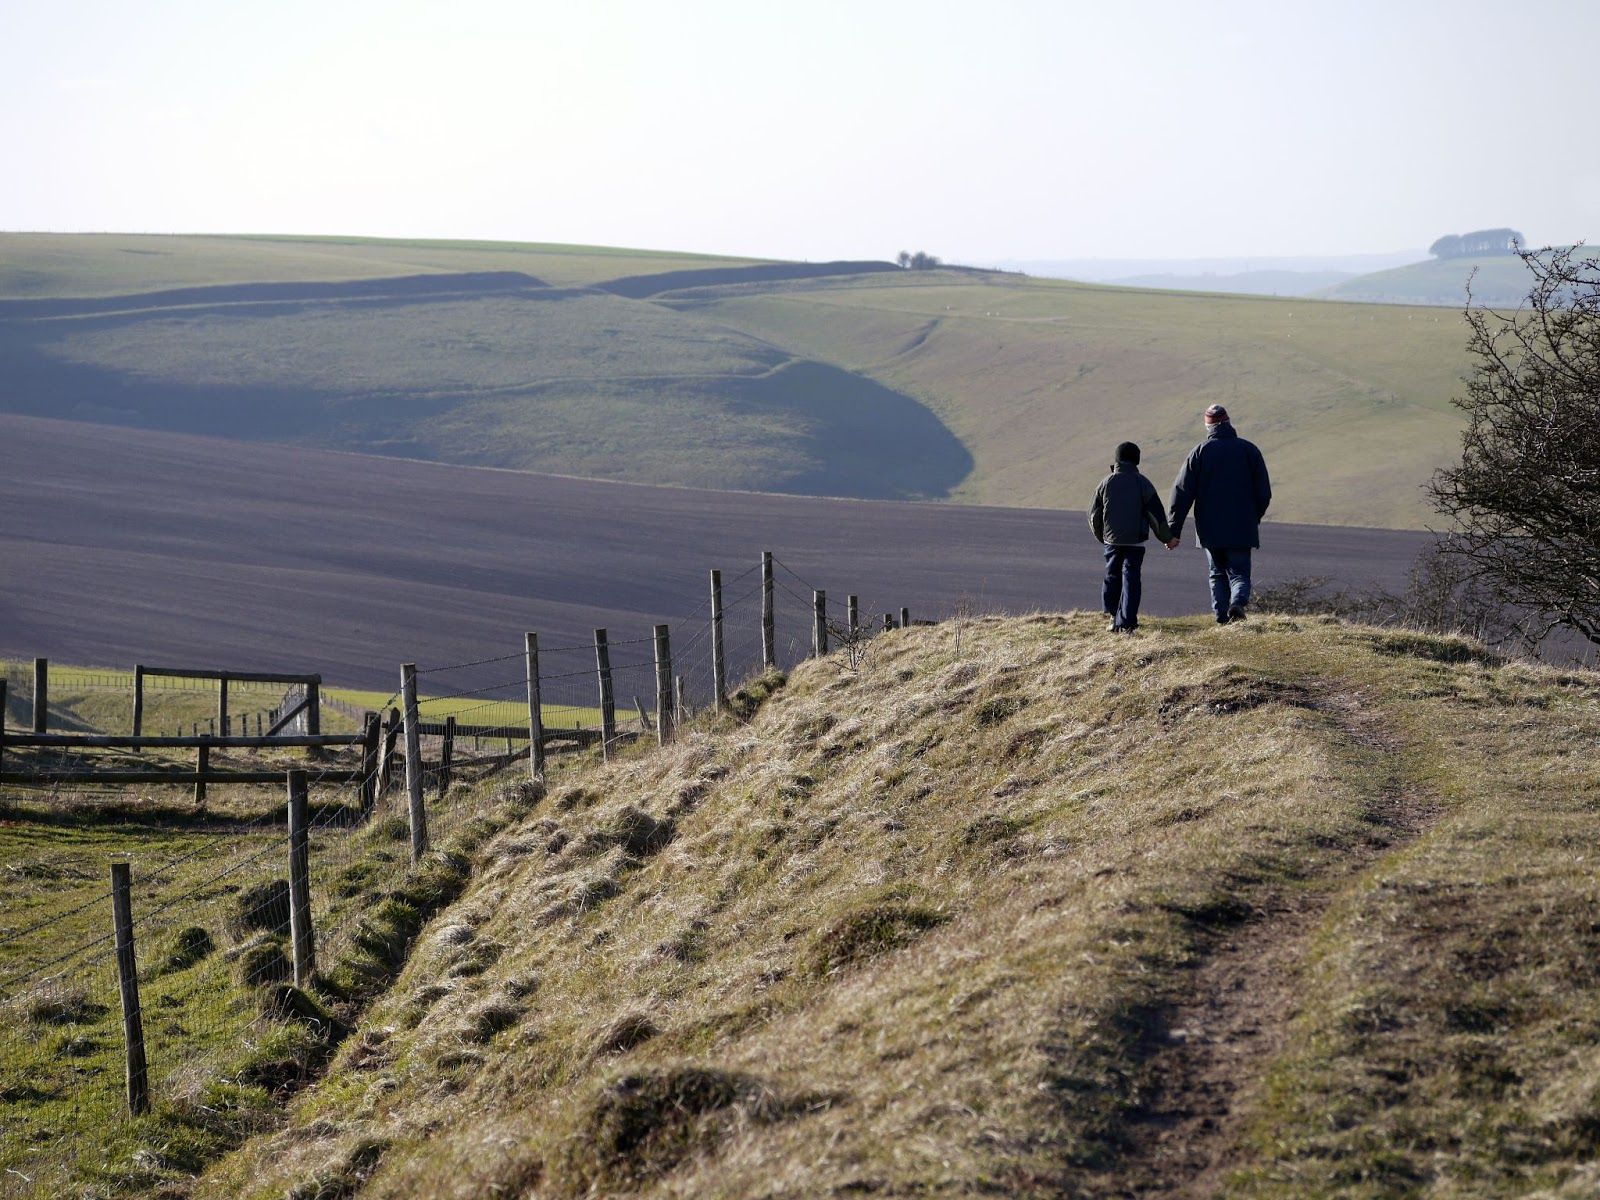 father and son walks hand-in-hand through a field